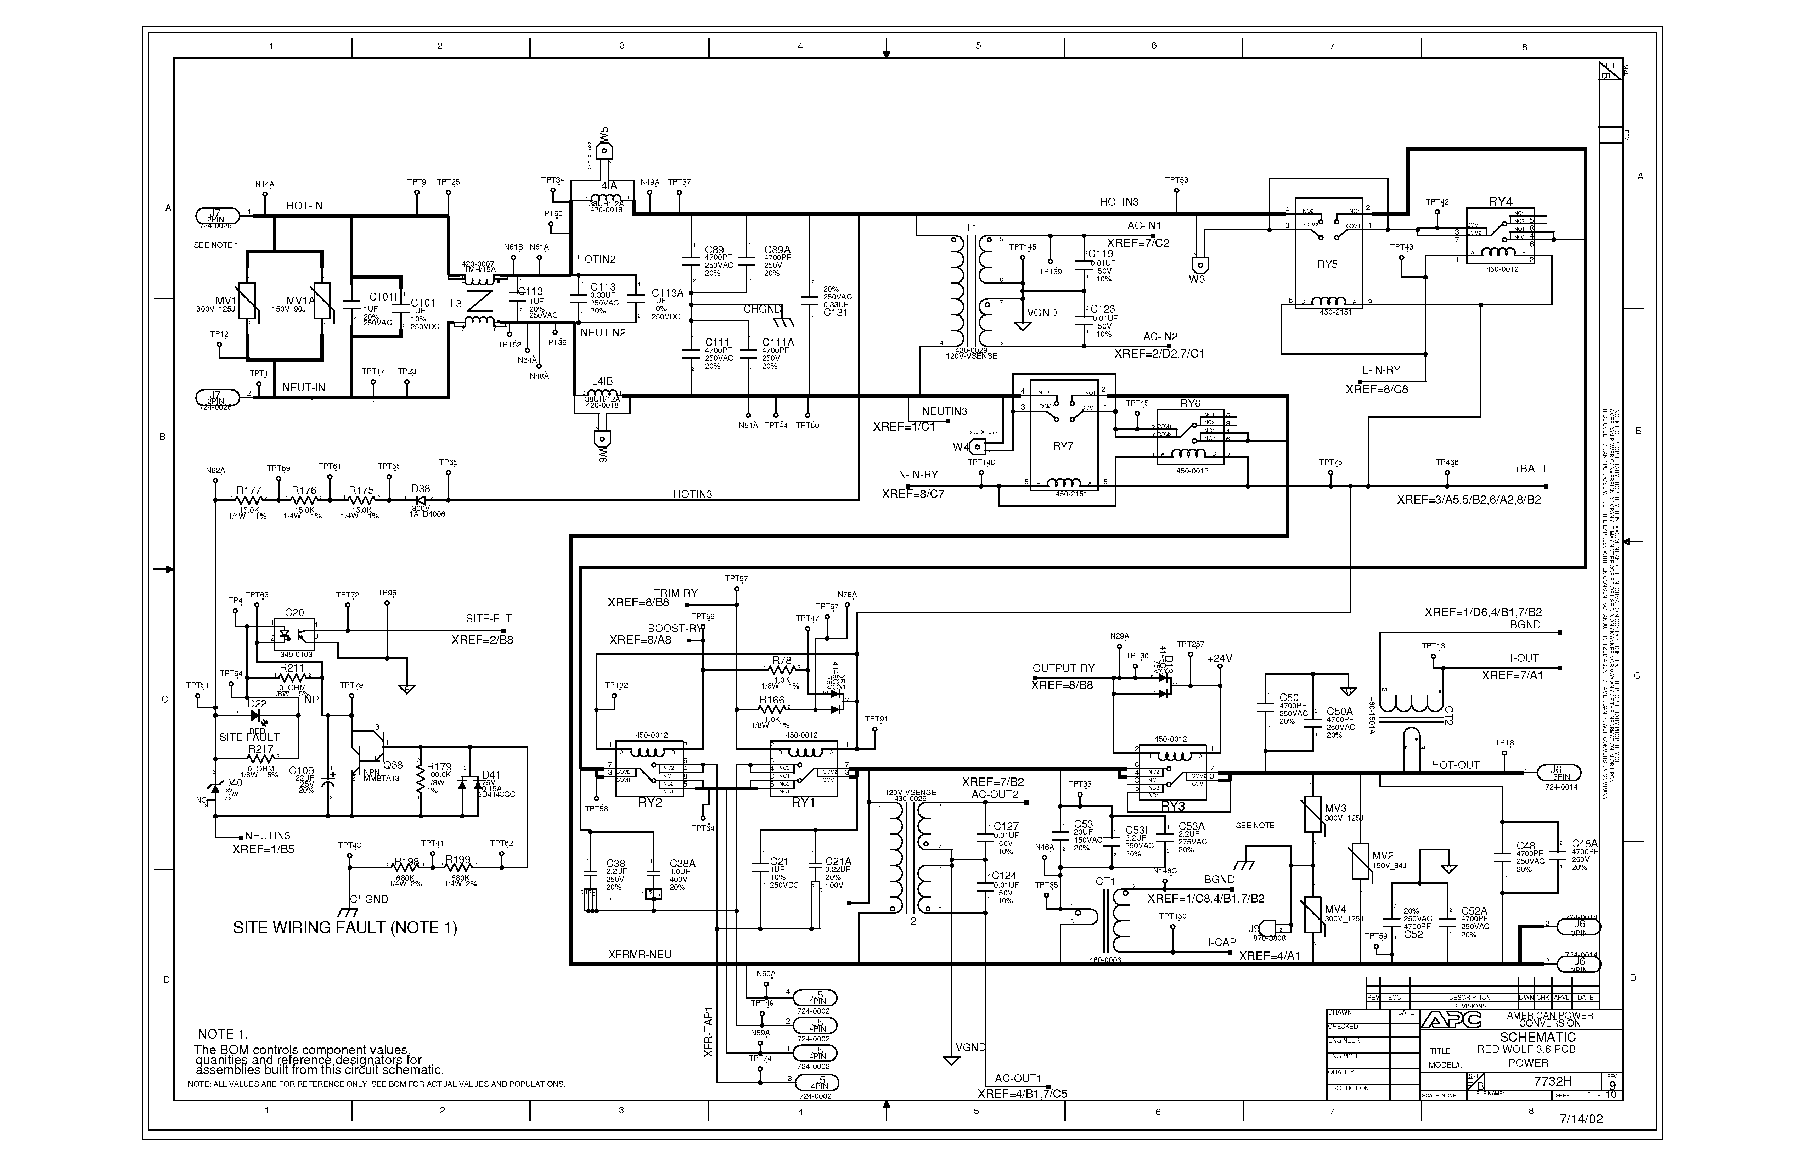 APC 640-7732H Service Manual download, schematics, eeprom